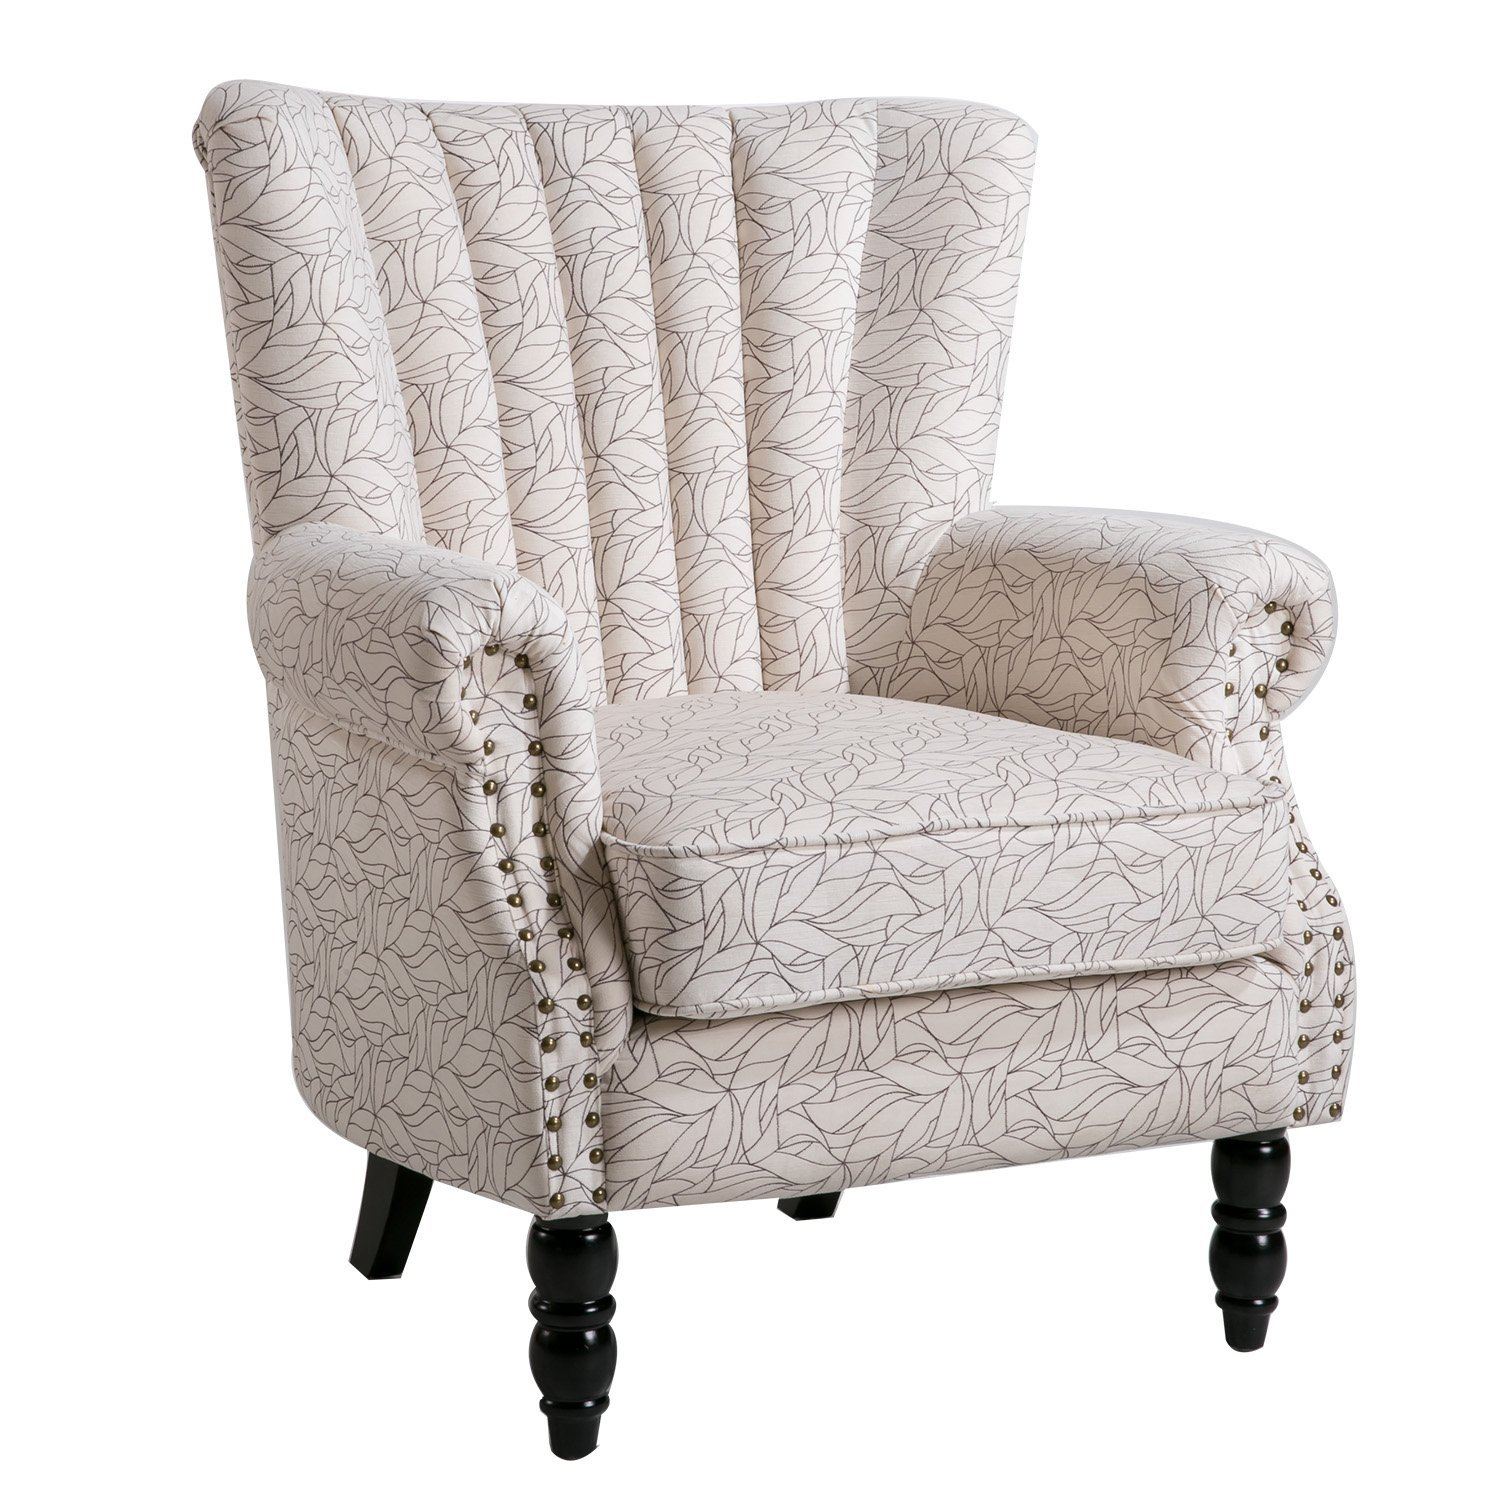 Harper&Bright Designs Rolled Arm Upholstered Accent Chair Armchair, Multiple Colors by Harper&Bright Designs